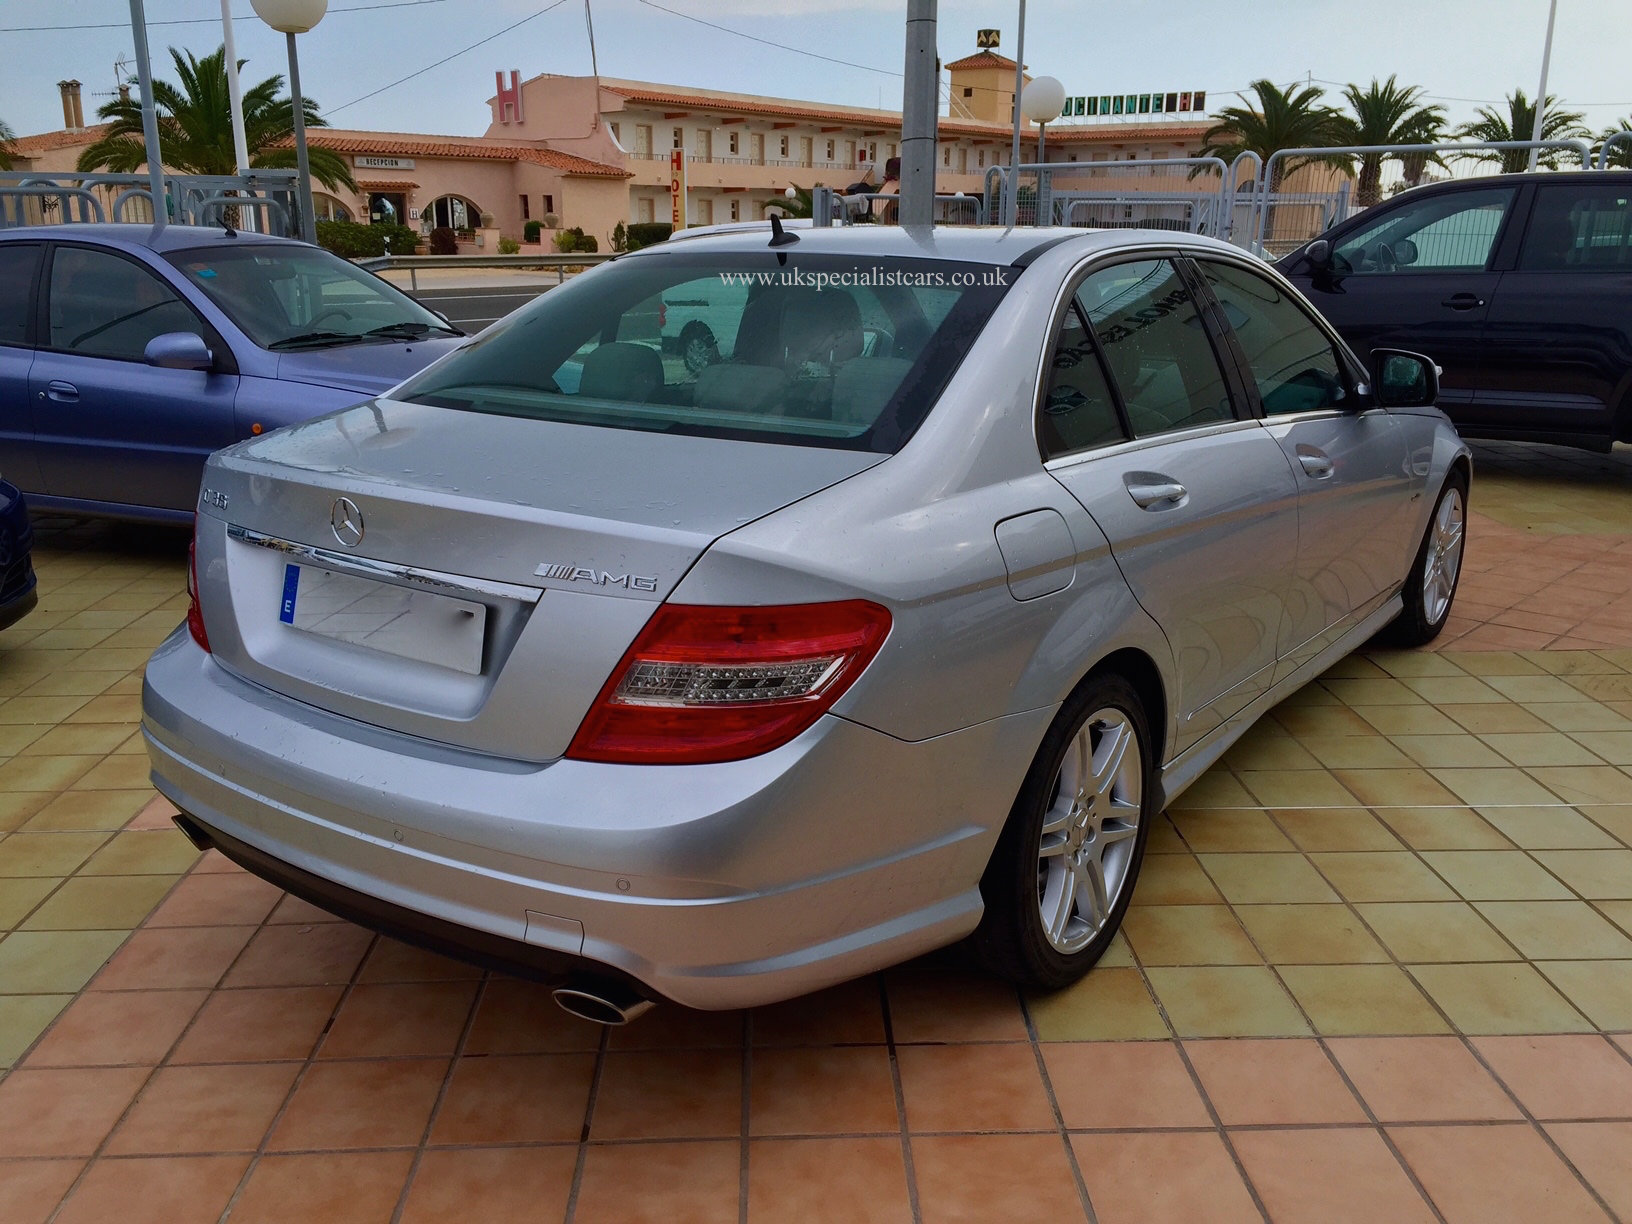 26a03a4cc1 UK Specialist Cars have a left hand drive Mercedes C class automatic in  Spain - Costa